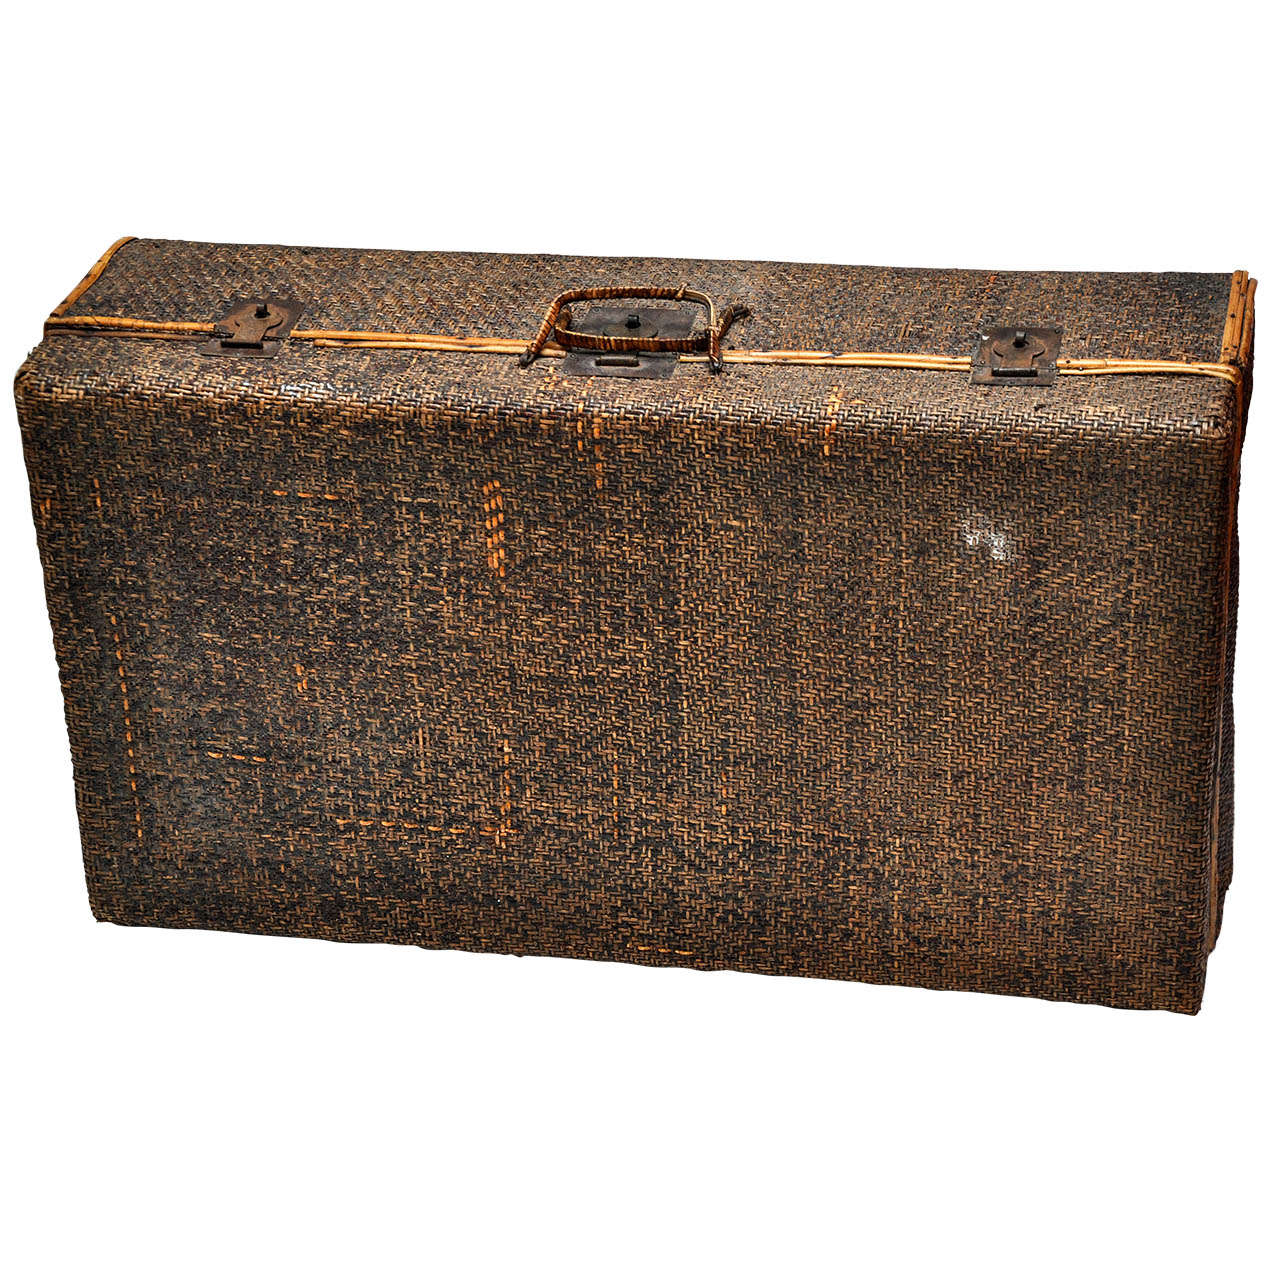 Vintage Wicker Suitcase at 1stdibs